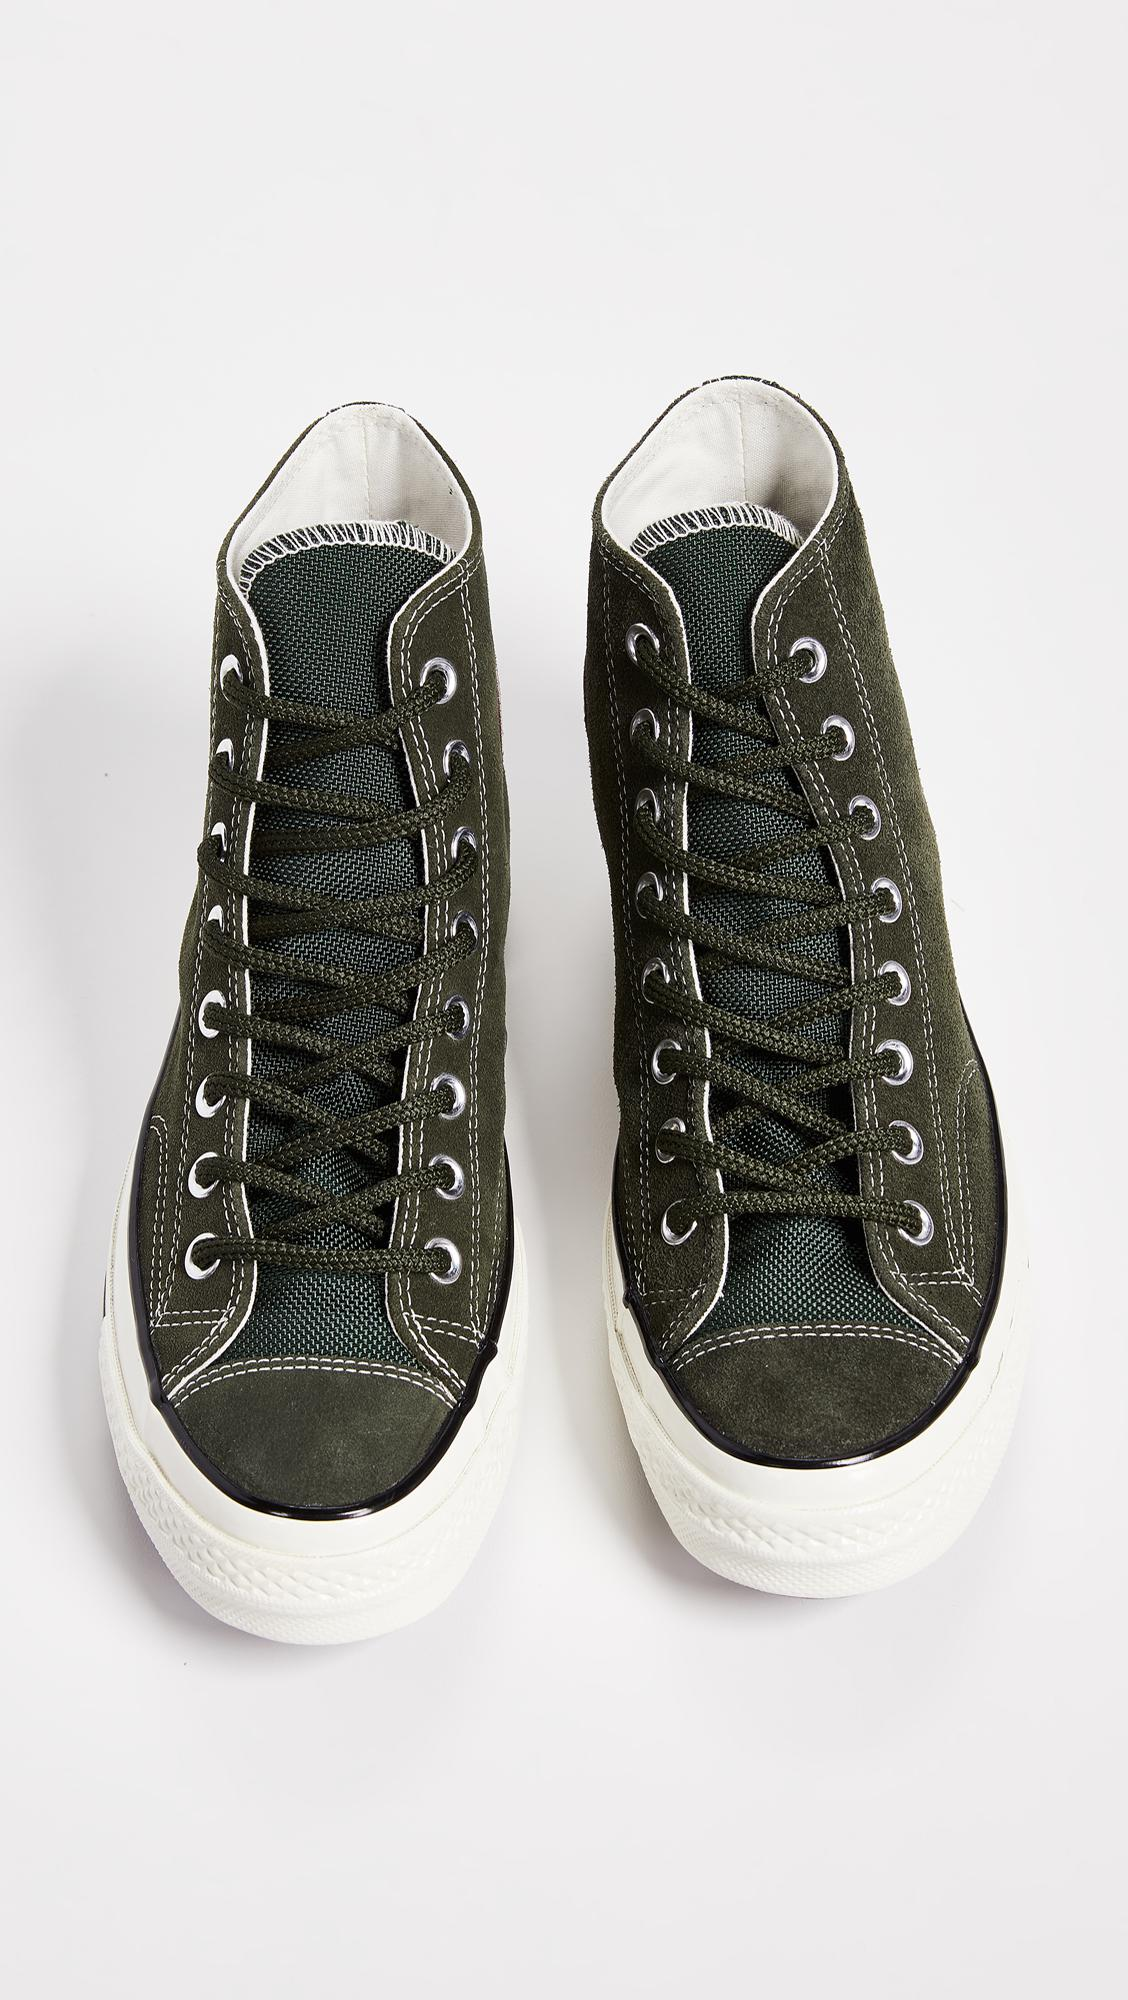 80c7bcfbe77 Converse Chuck Taylor 70 Base Camp Suede High Top Sneakers in Green ...